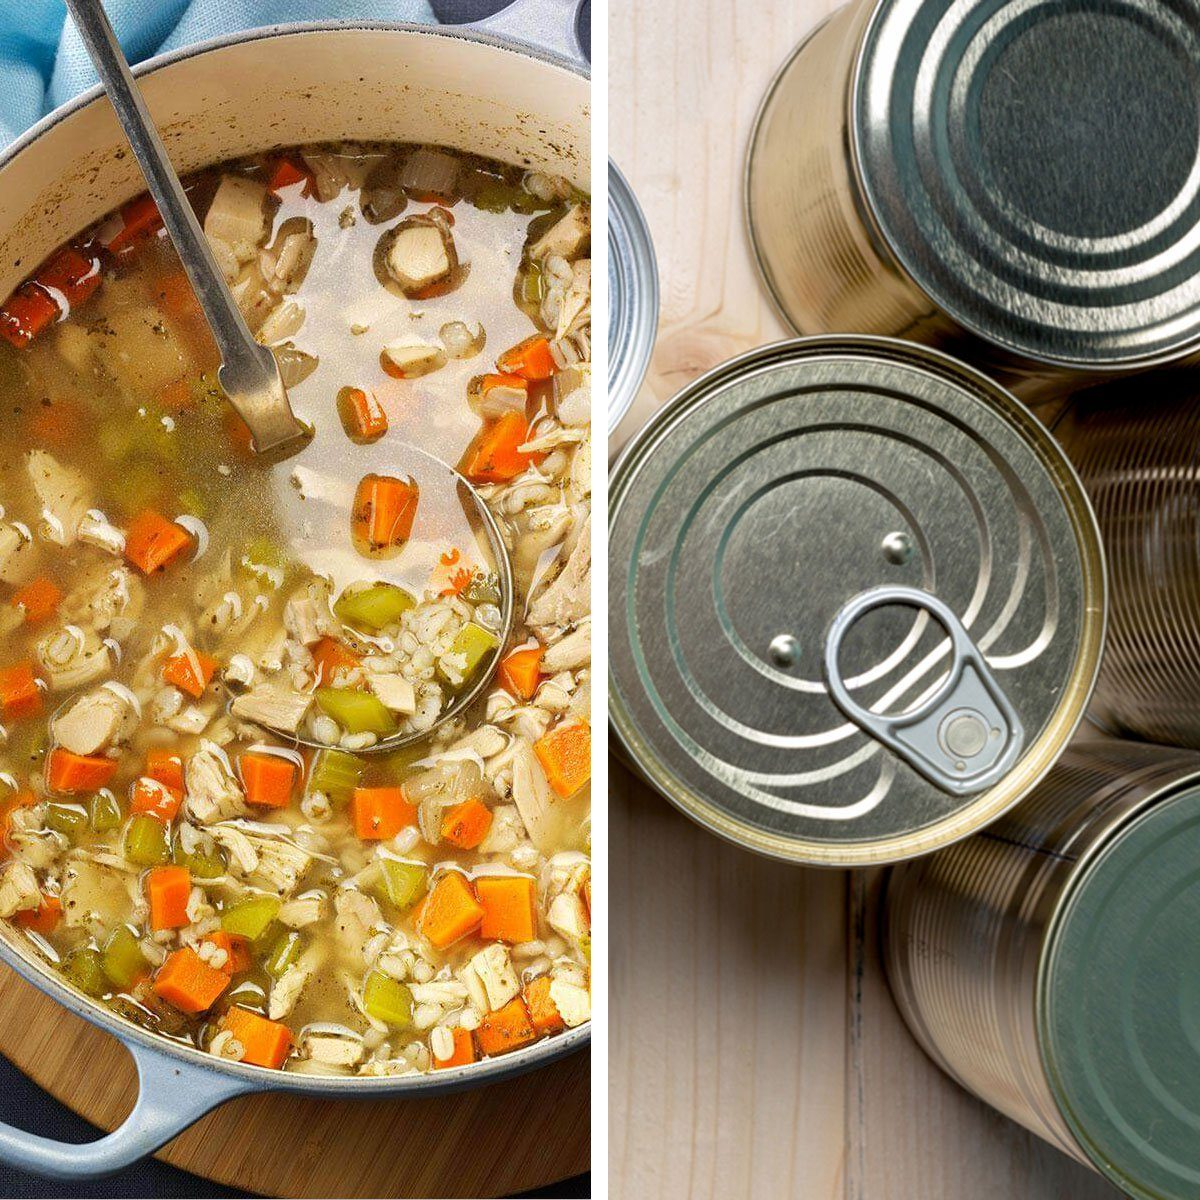 Homemade soup vs canned